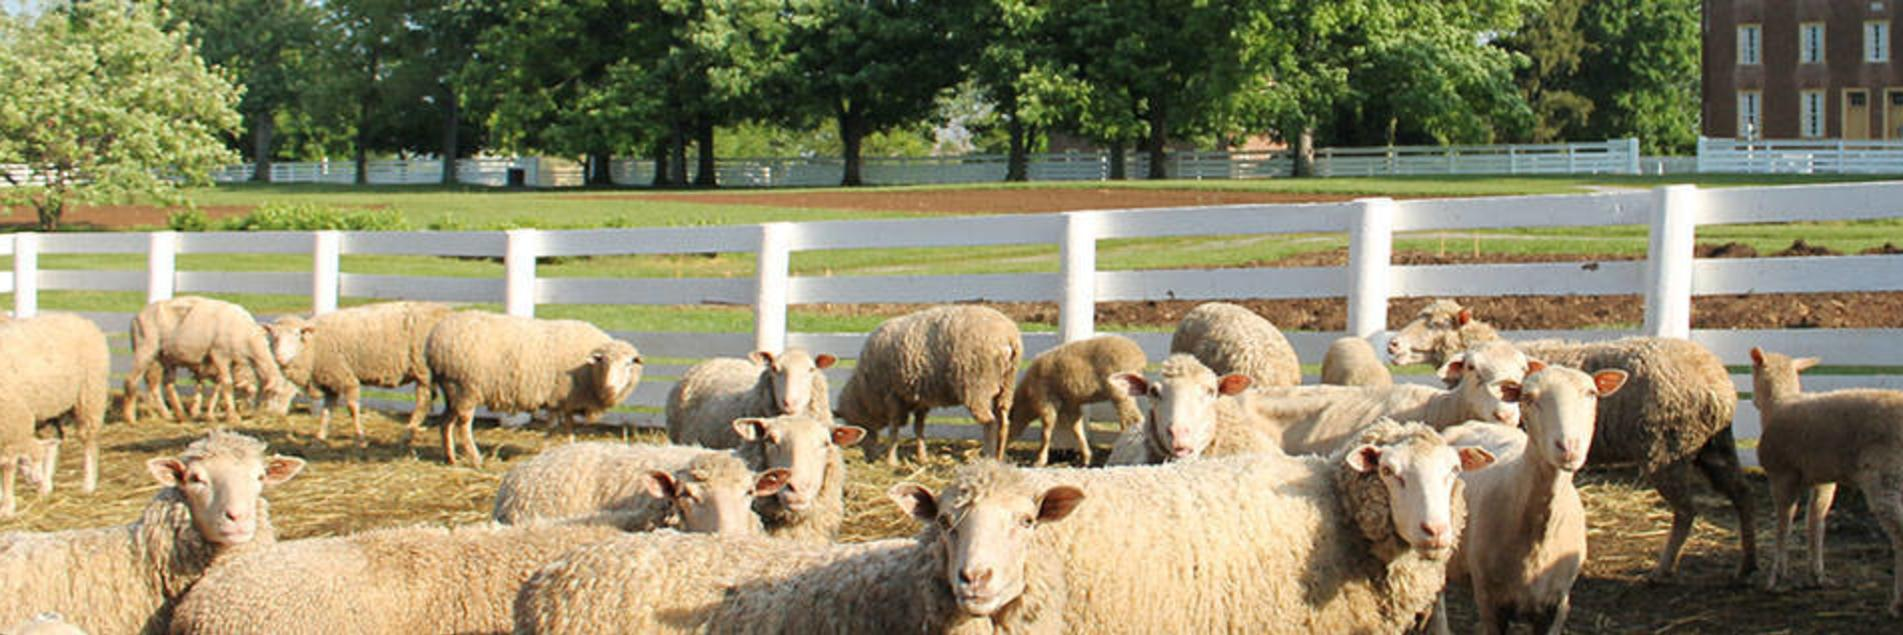 Sheep at Shaker Village